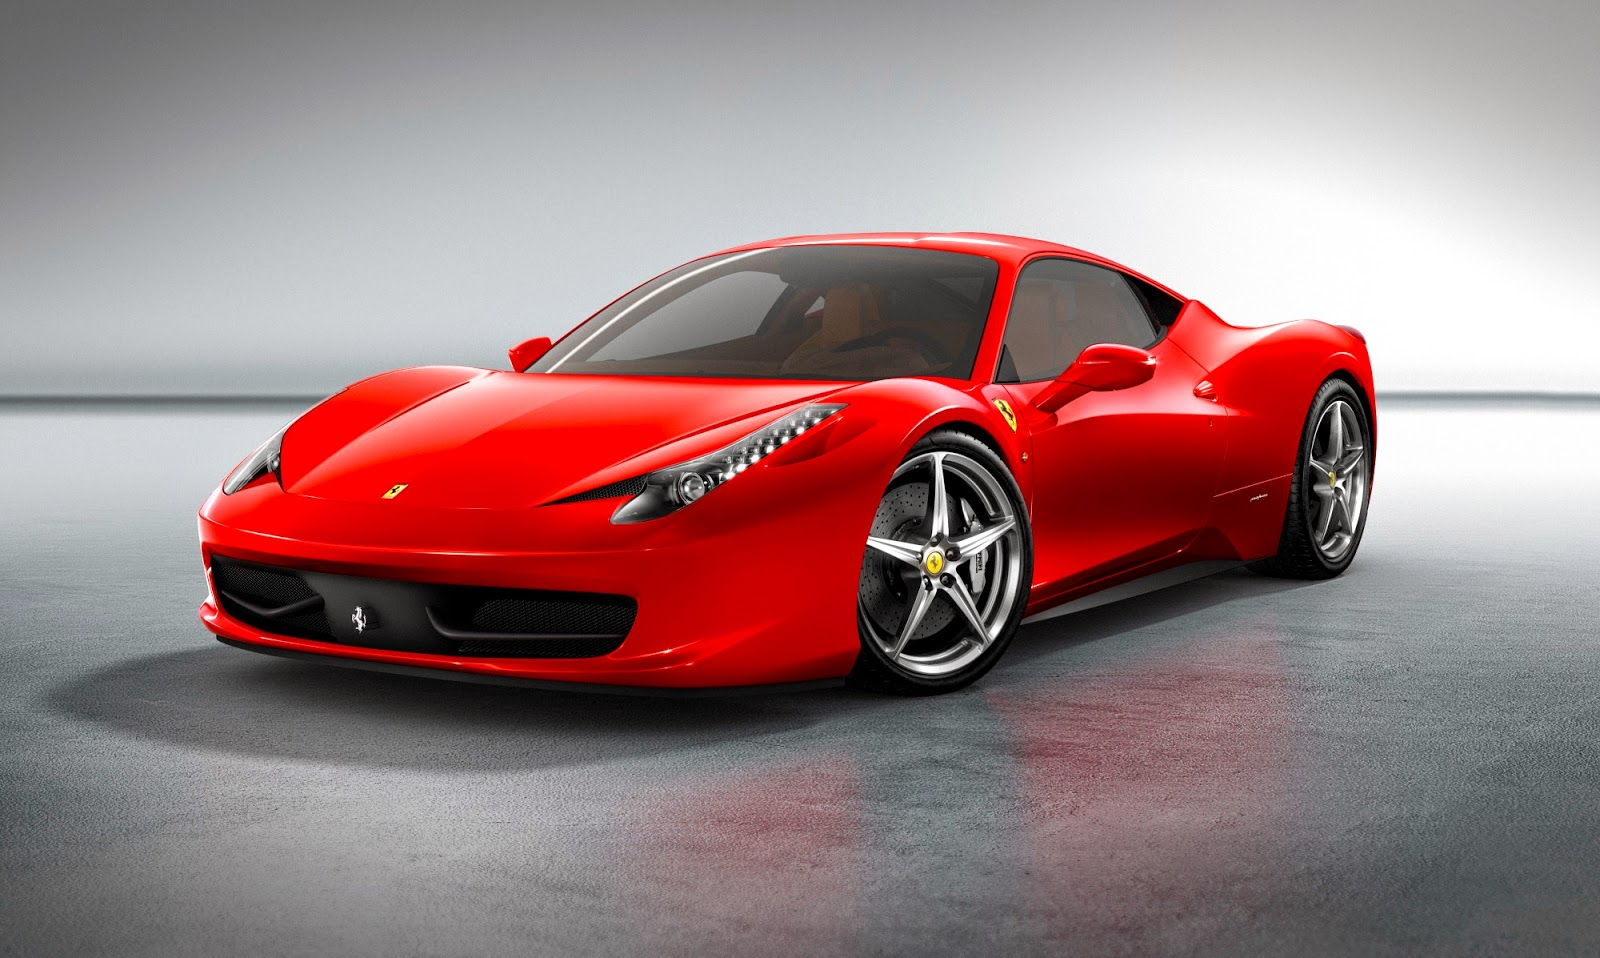 Willie Revillame owns Ferrari 458